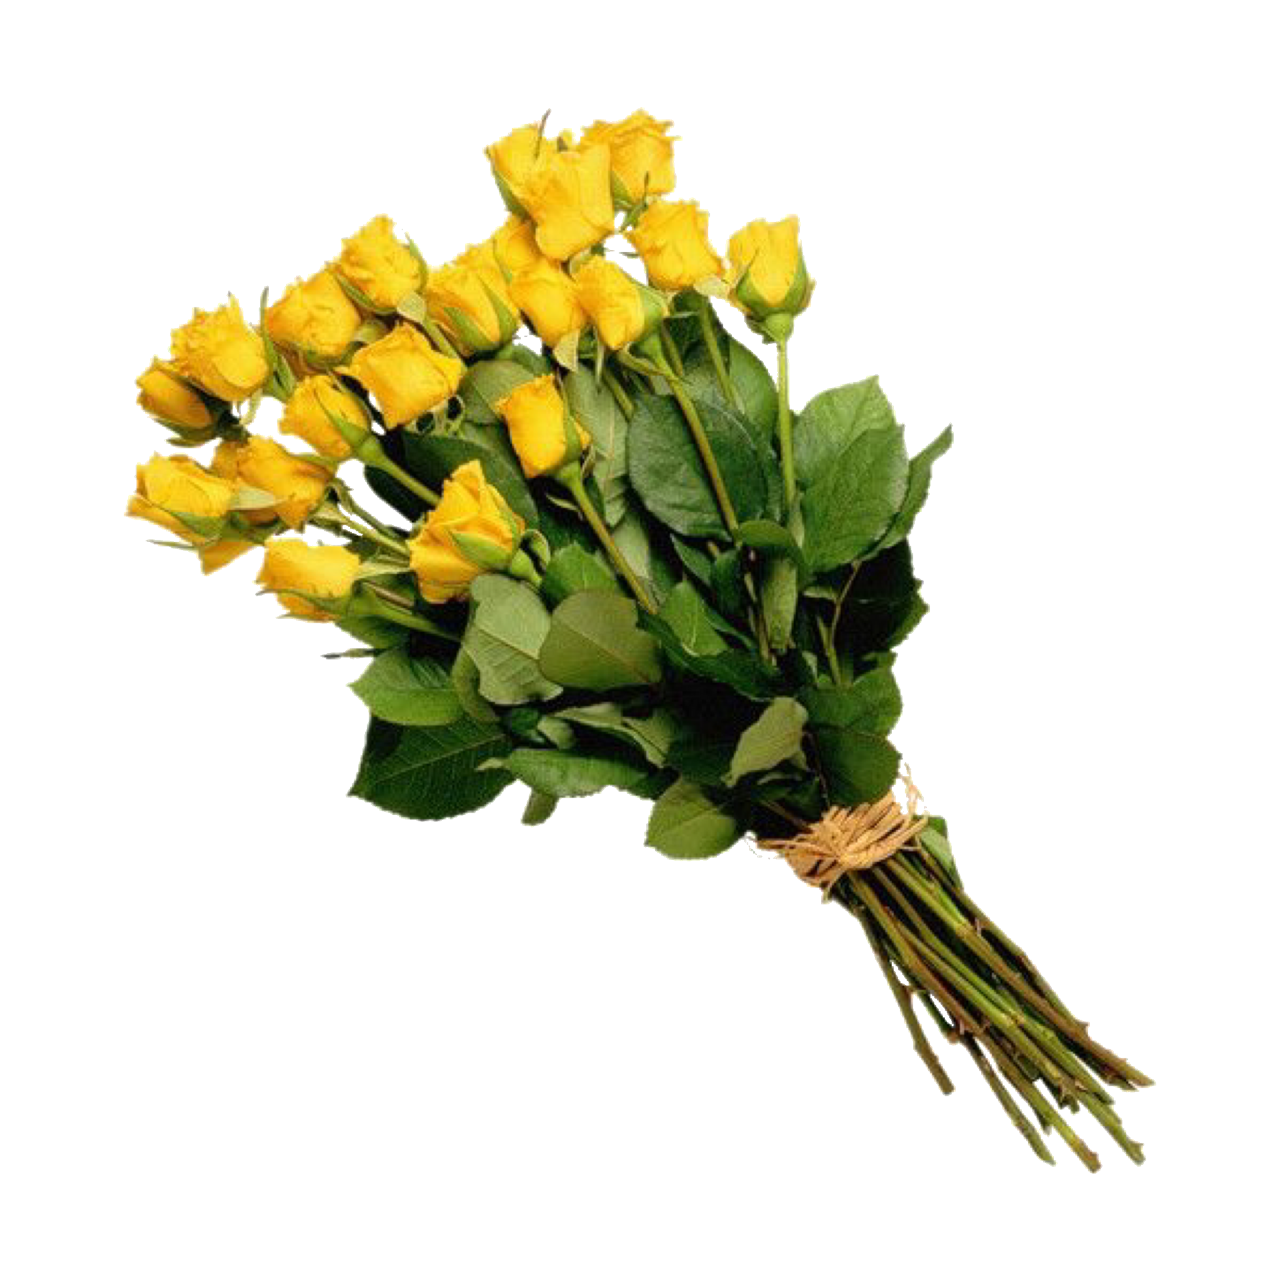 Pngs For Moodboards Yellow Rose Bouquet Yellow Roses Flowers Bouquet